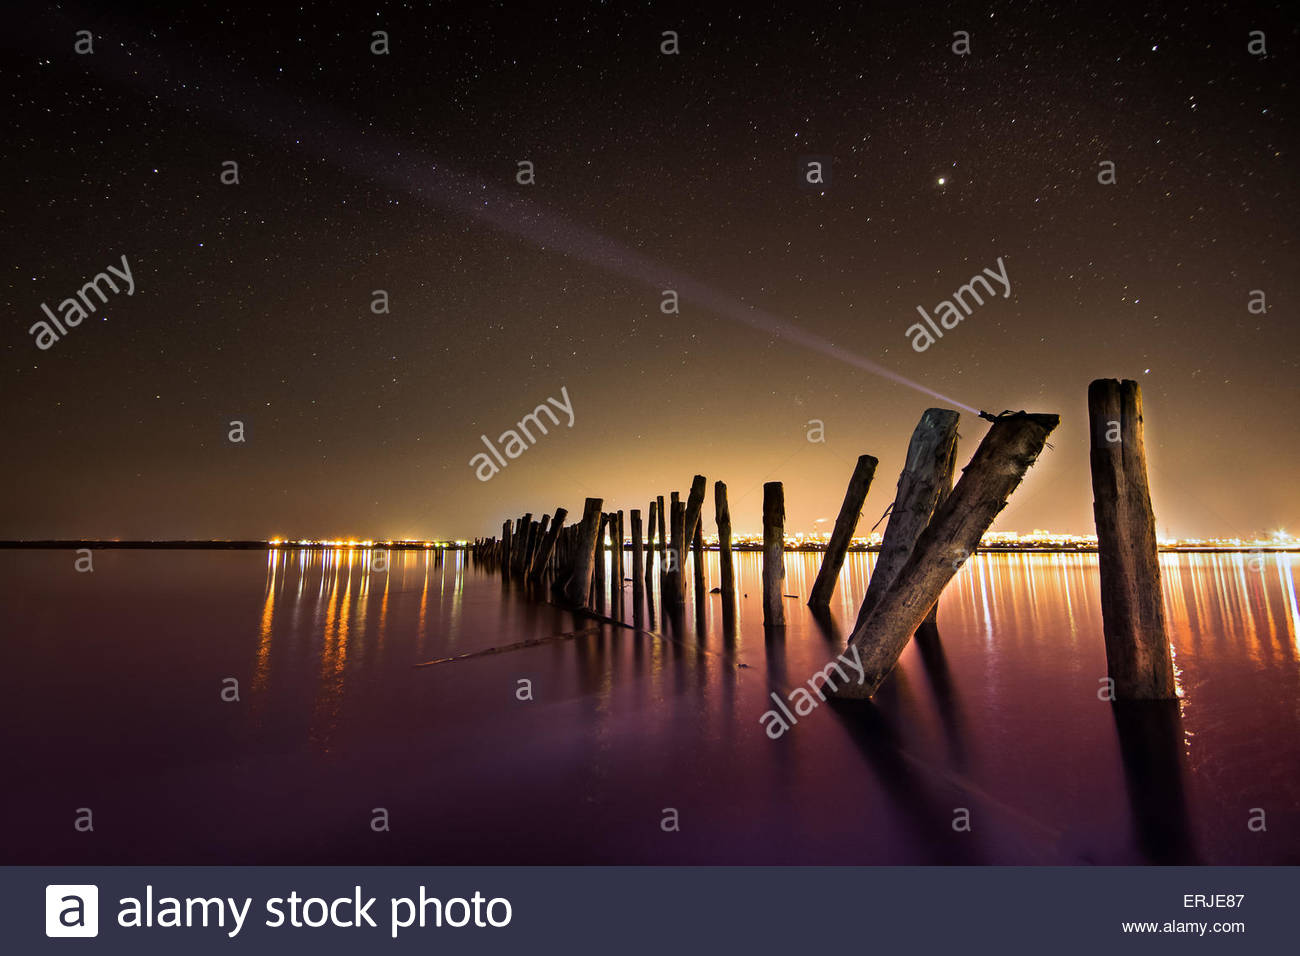 Unusual  pole with beam in the water  at night with deep stars sky - Stock Image